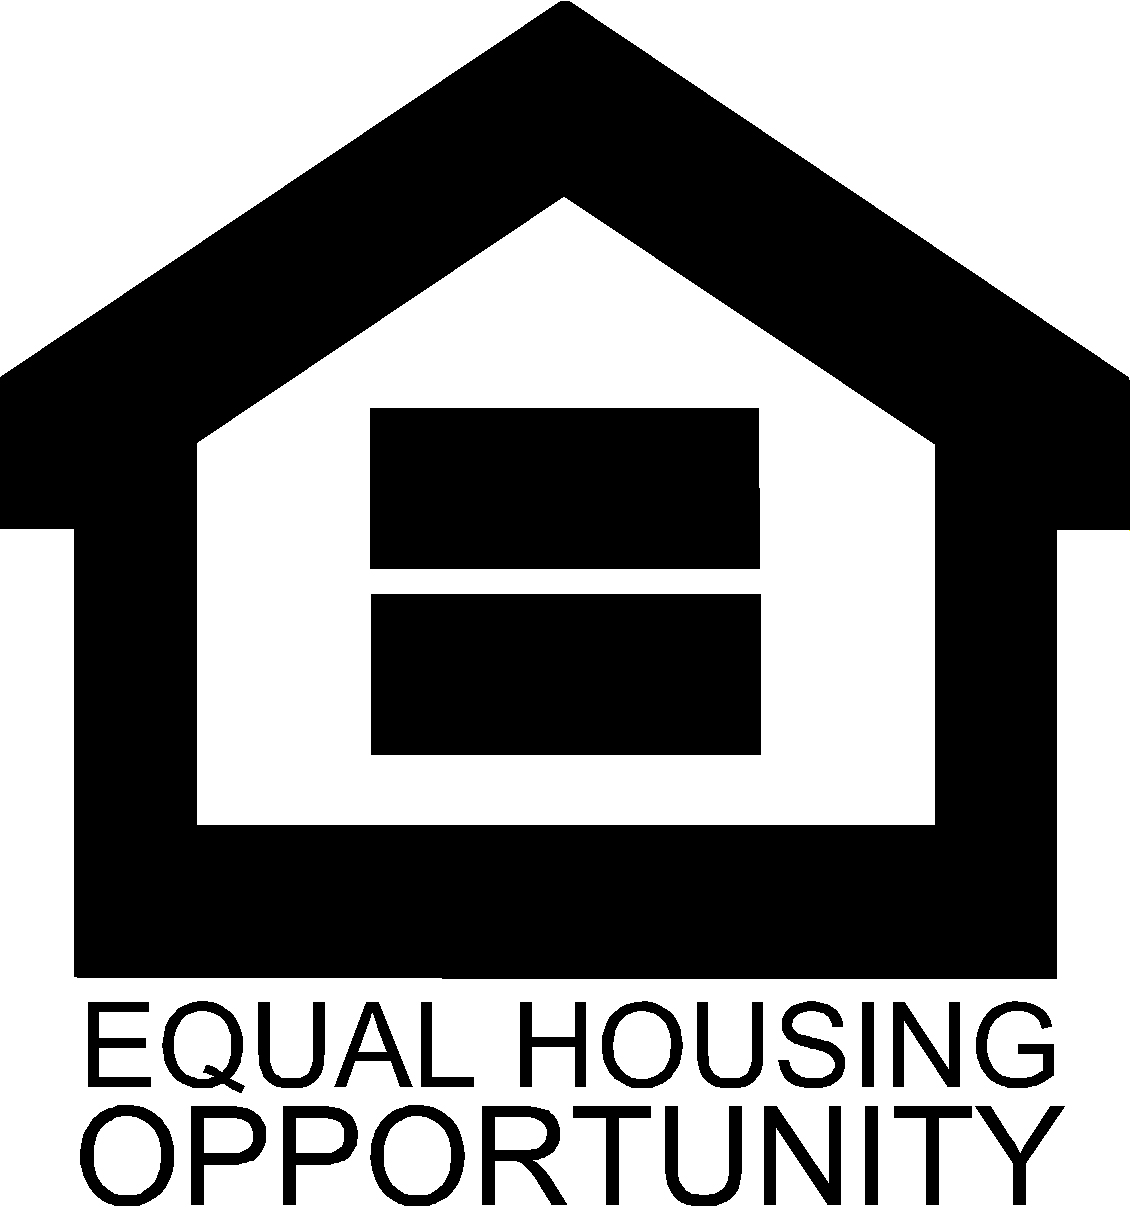 Equal Housing Opportunity - Black